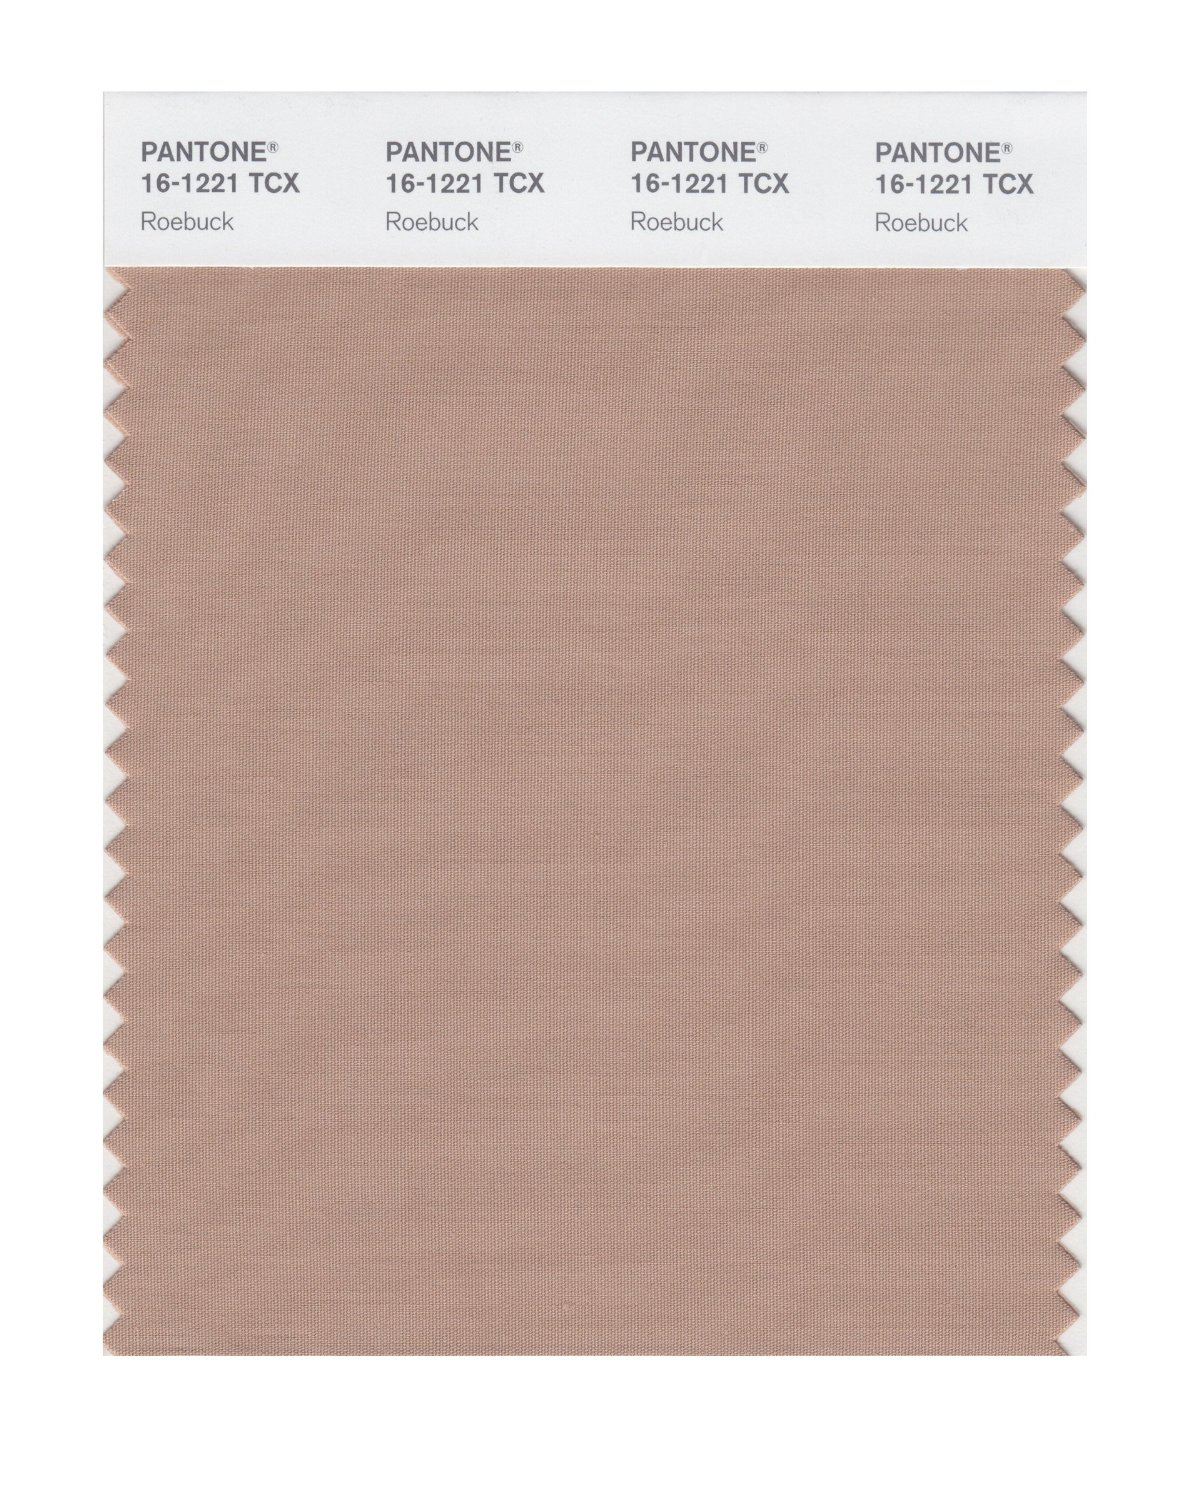 Pantone Smart Swatch 16-1221 Roebuck